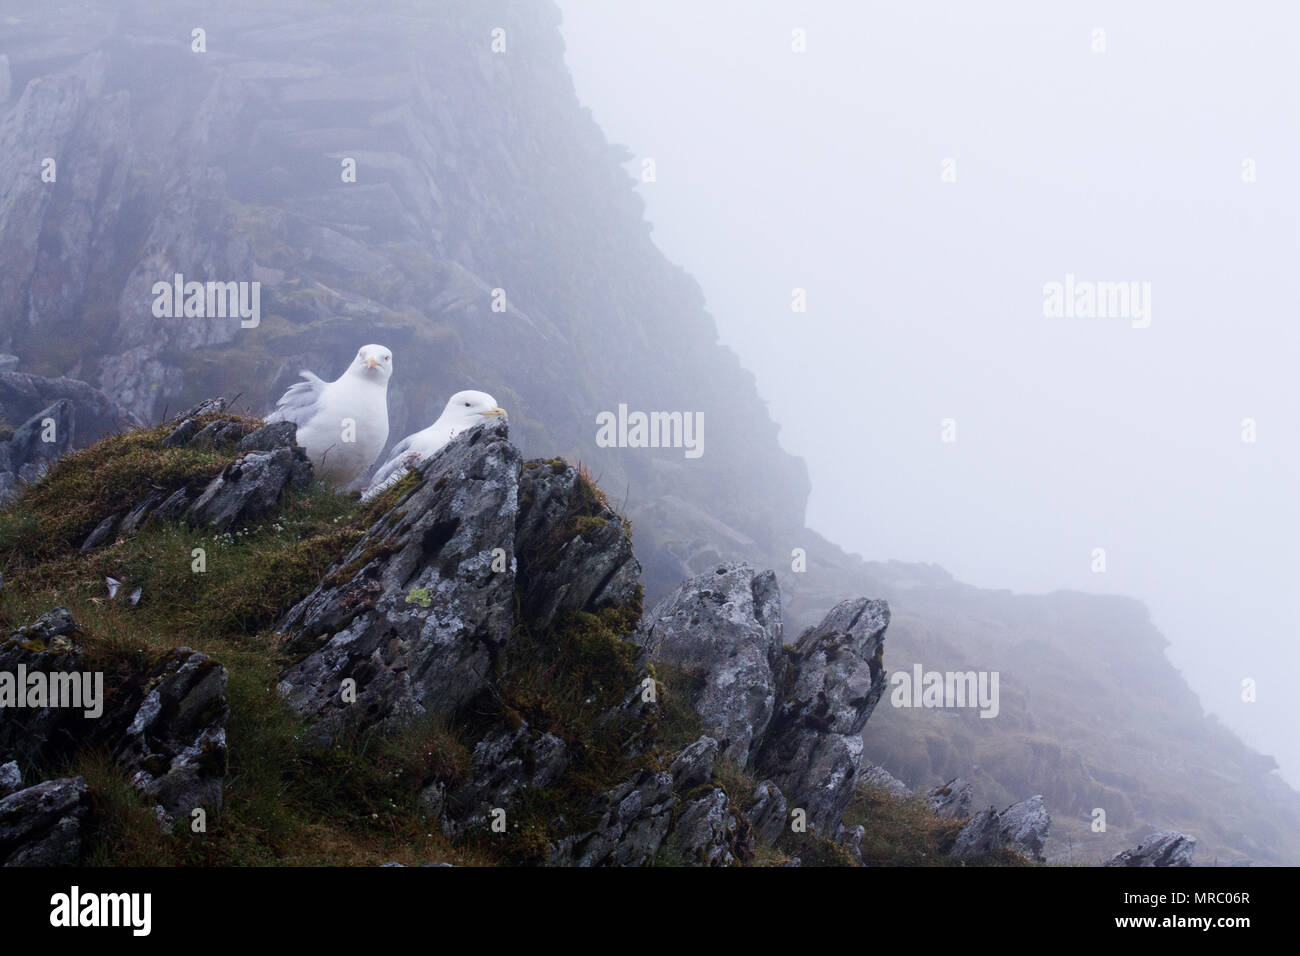 Couple of european herring gull (Larus argentatus) on top of Snowdon mountain, Snowdonia National Park, Wales. - Stock Image